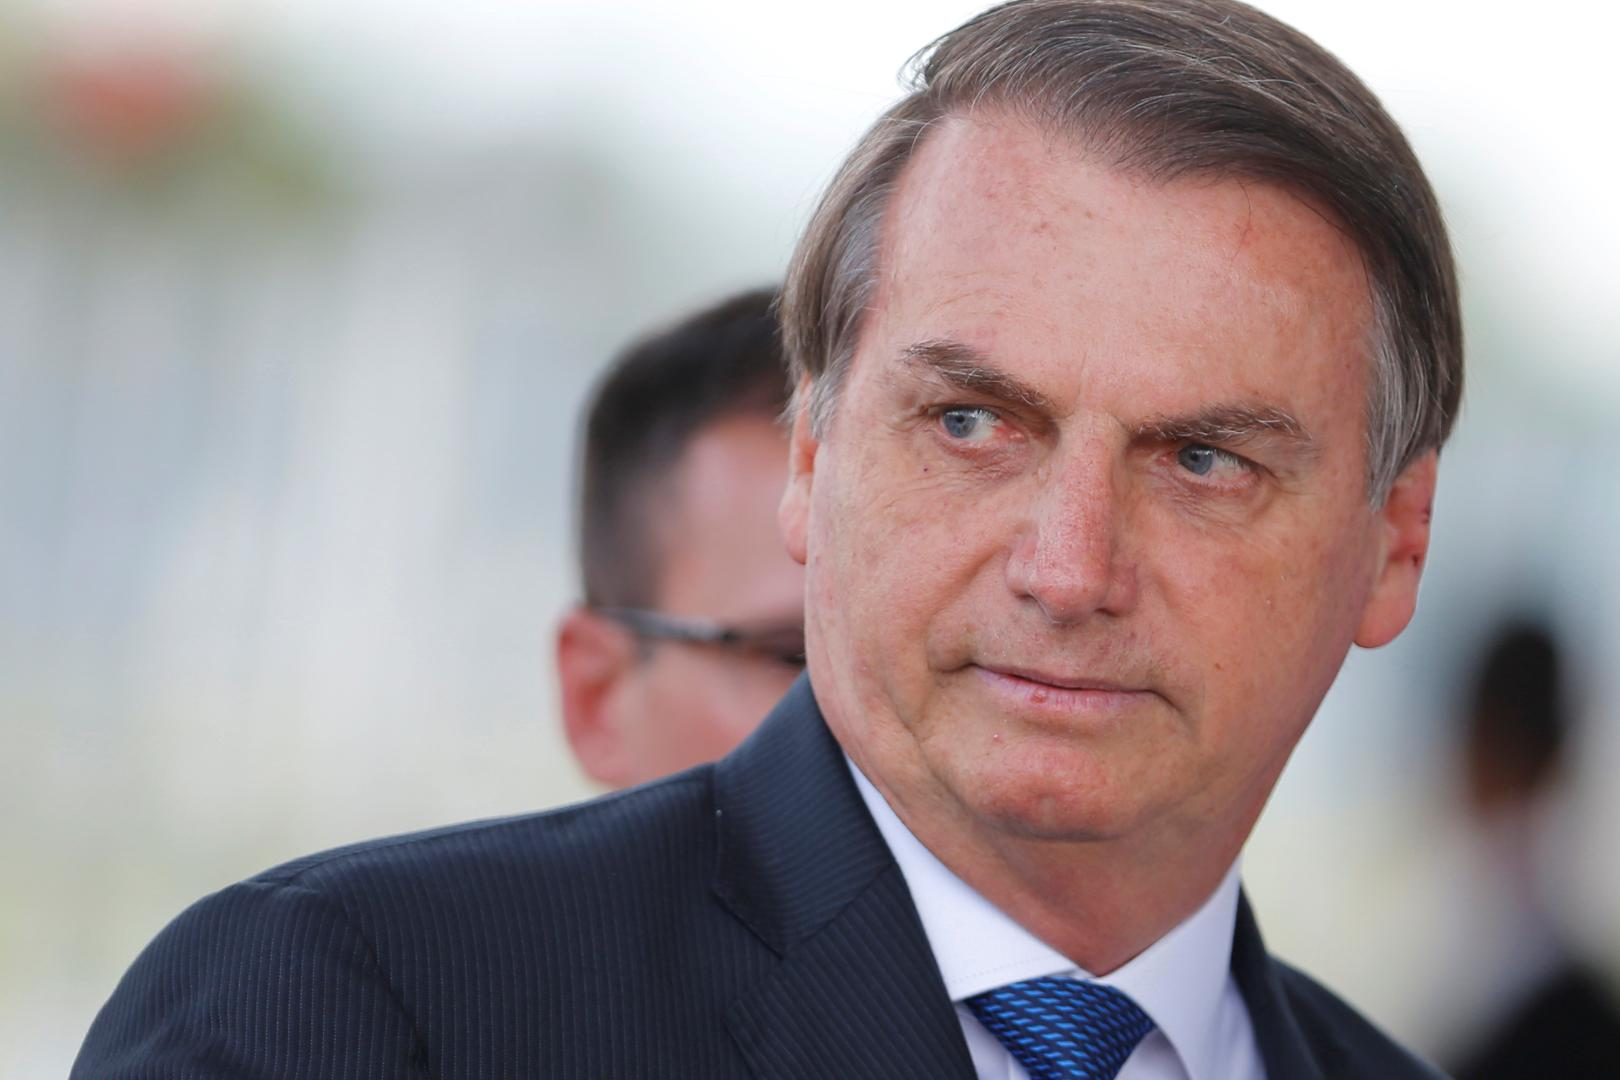 Jair Messias Bolsonaro